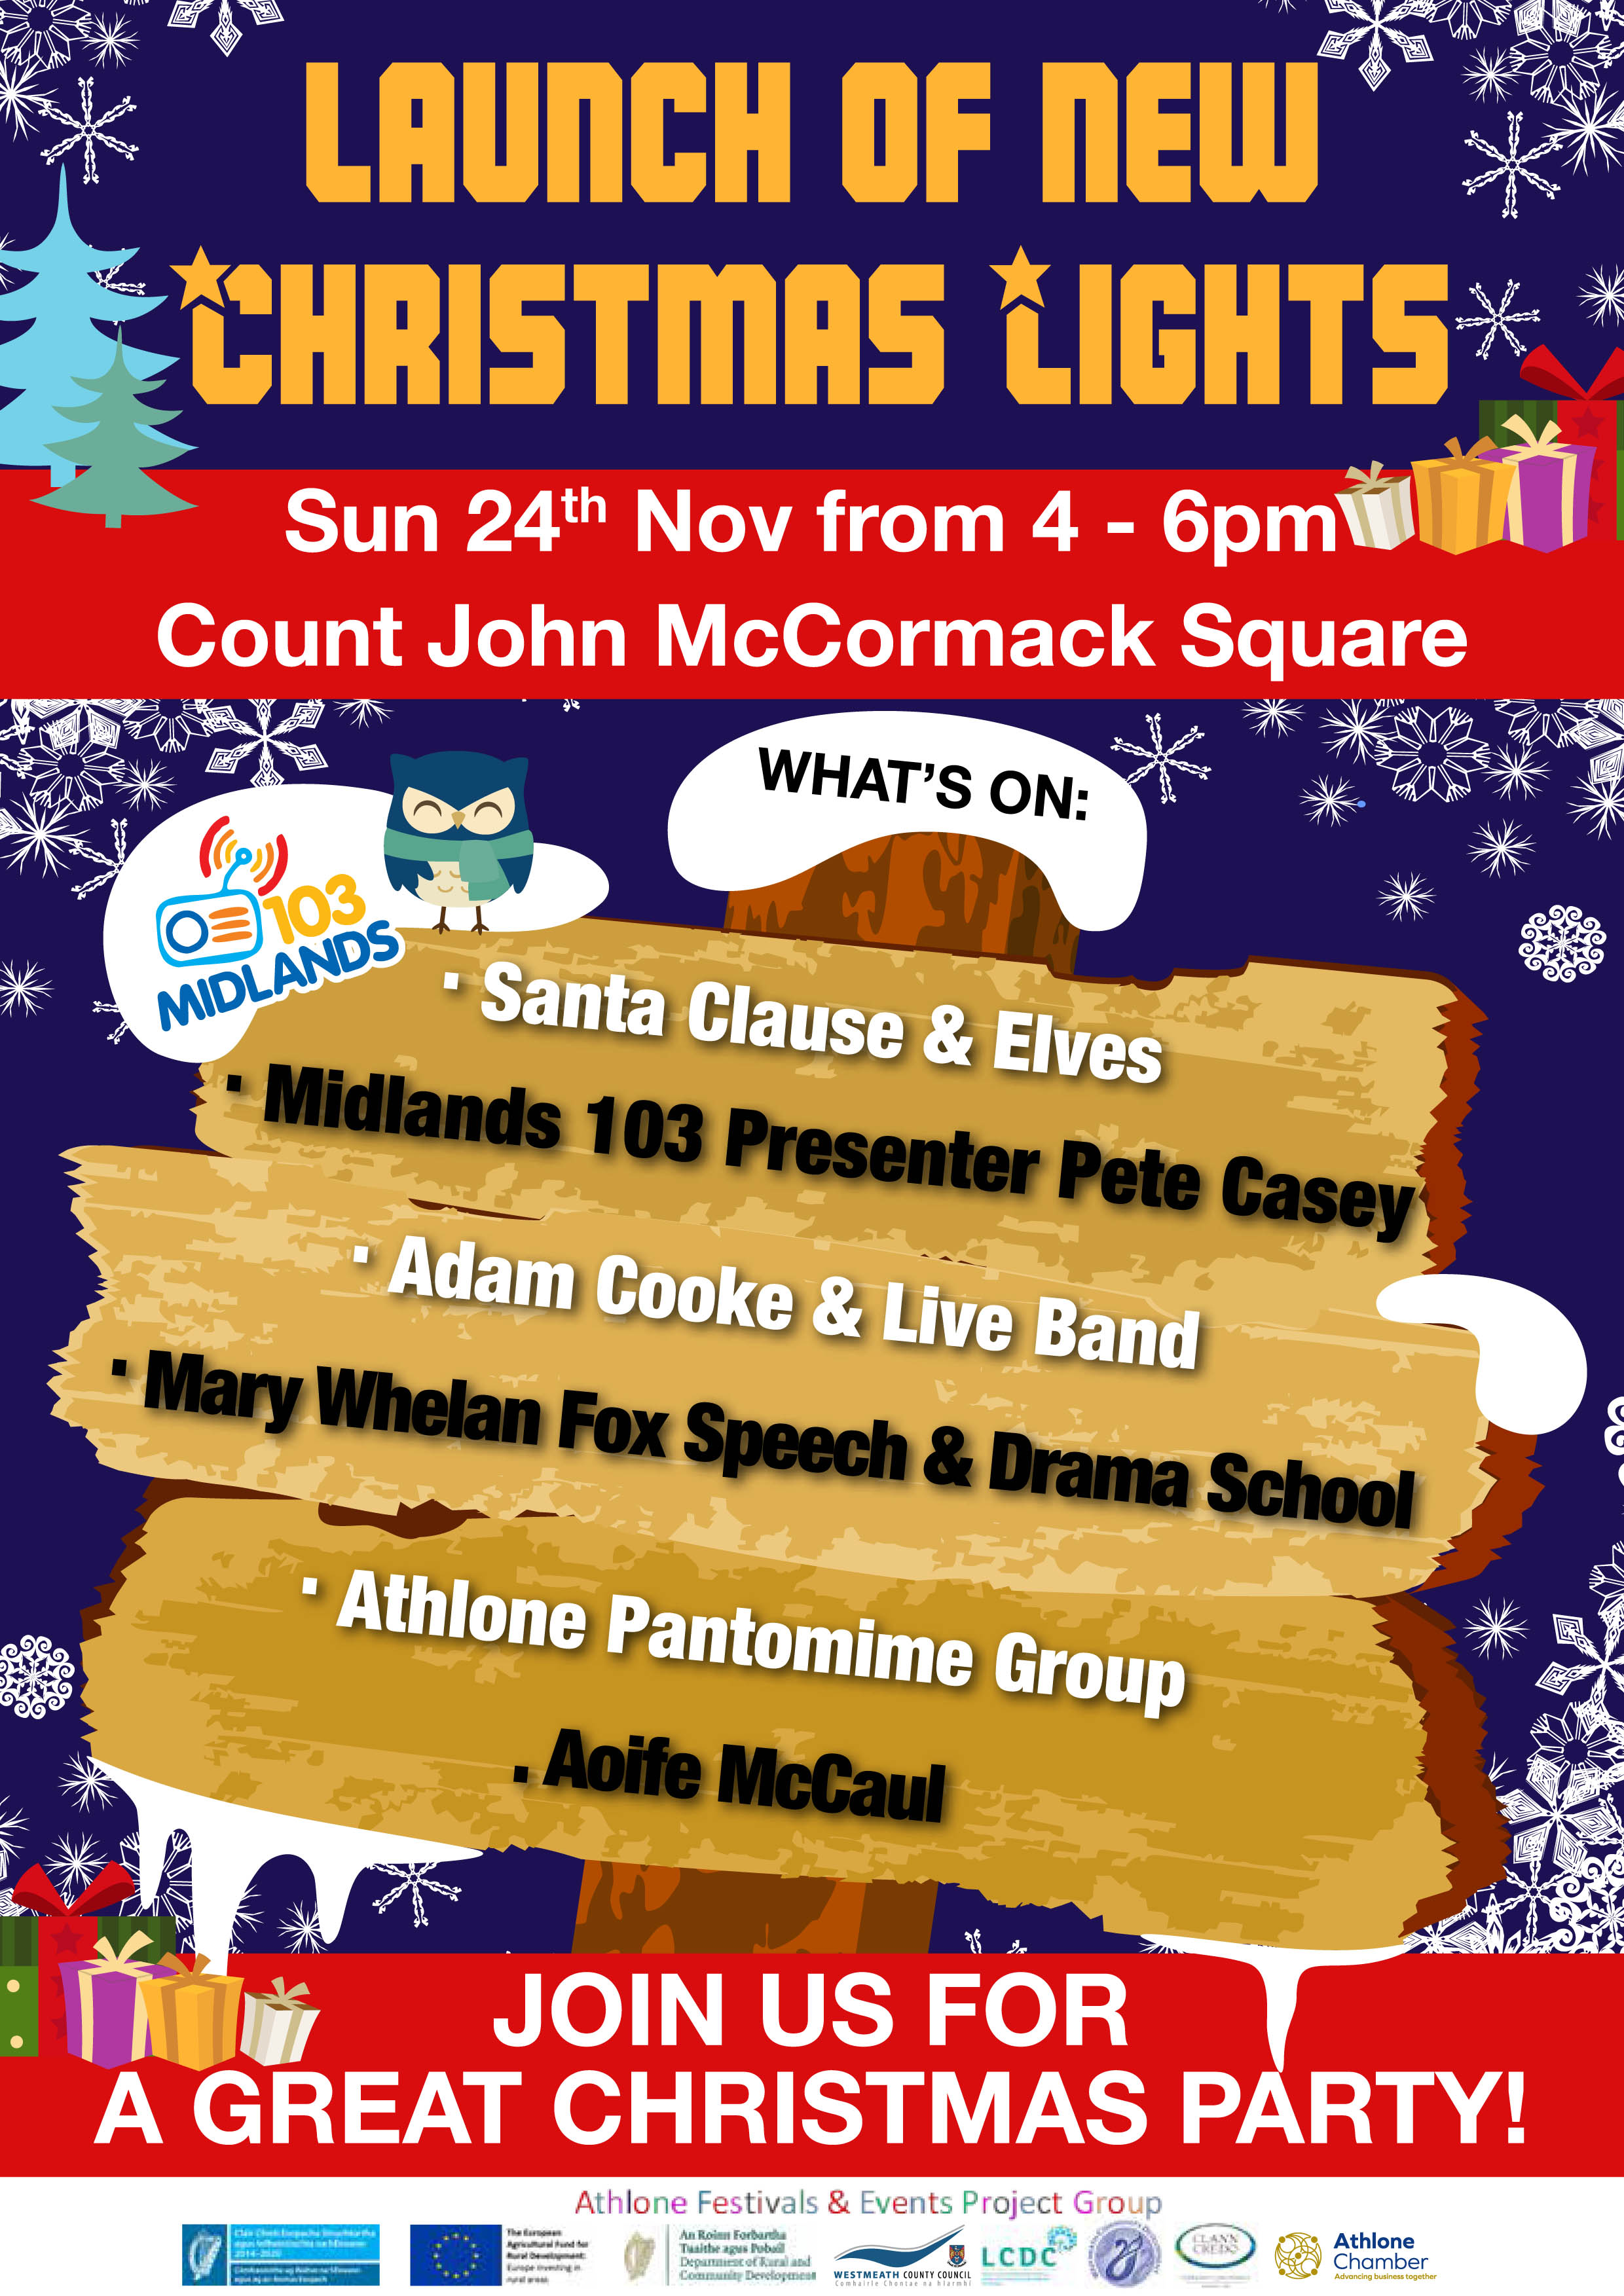 Athlone Christmas Lights 2019